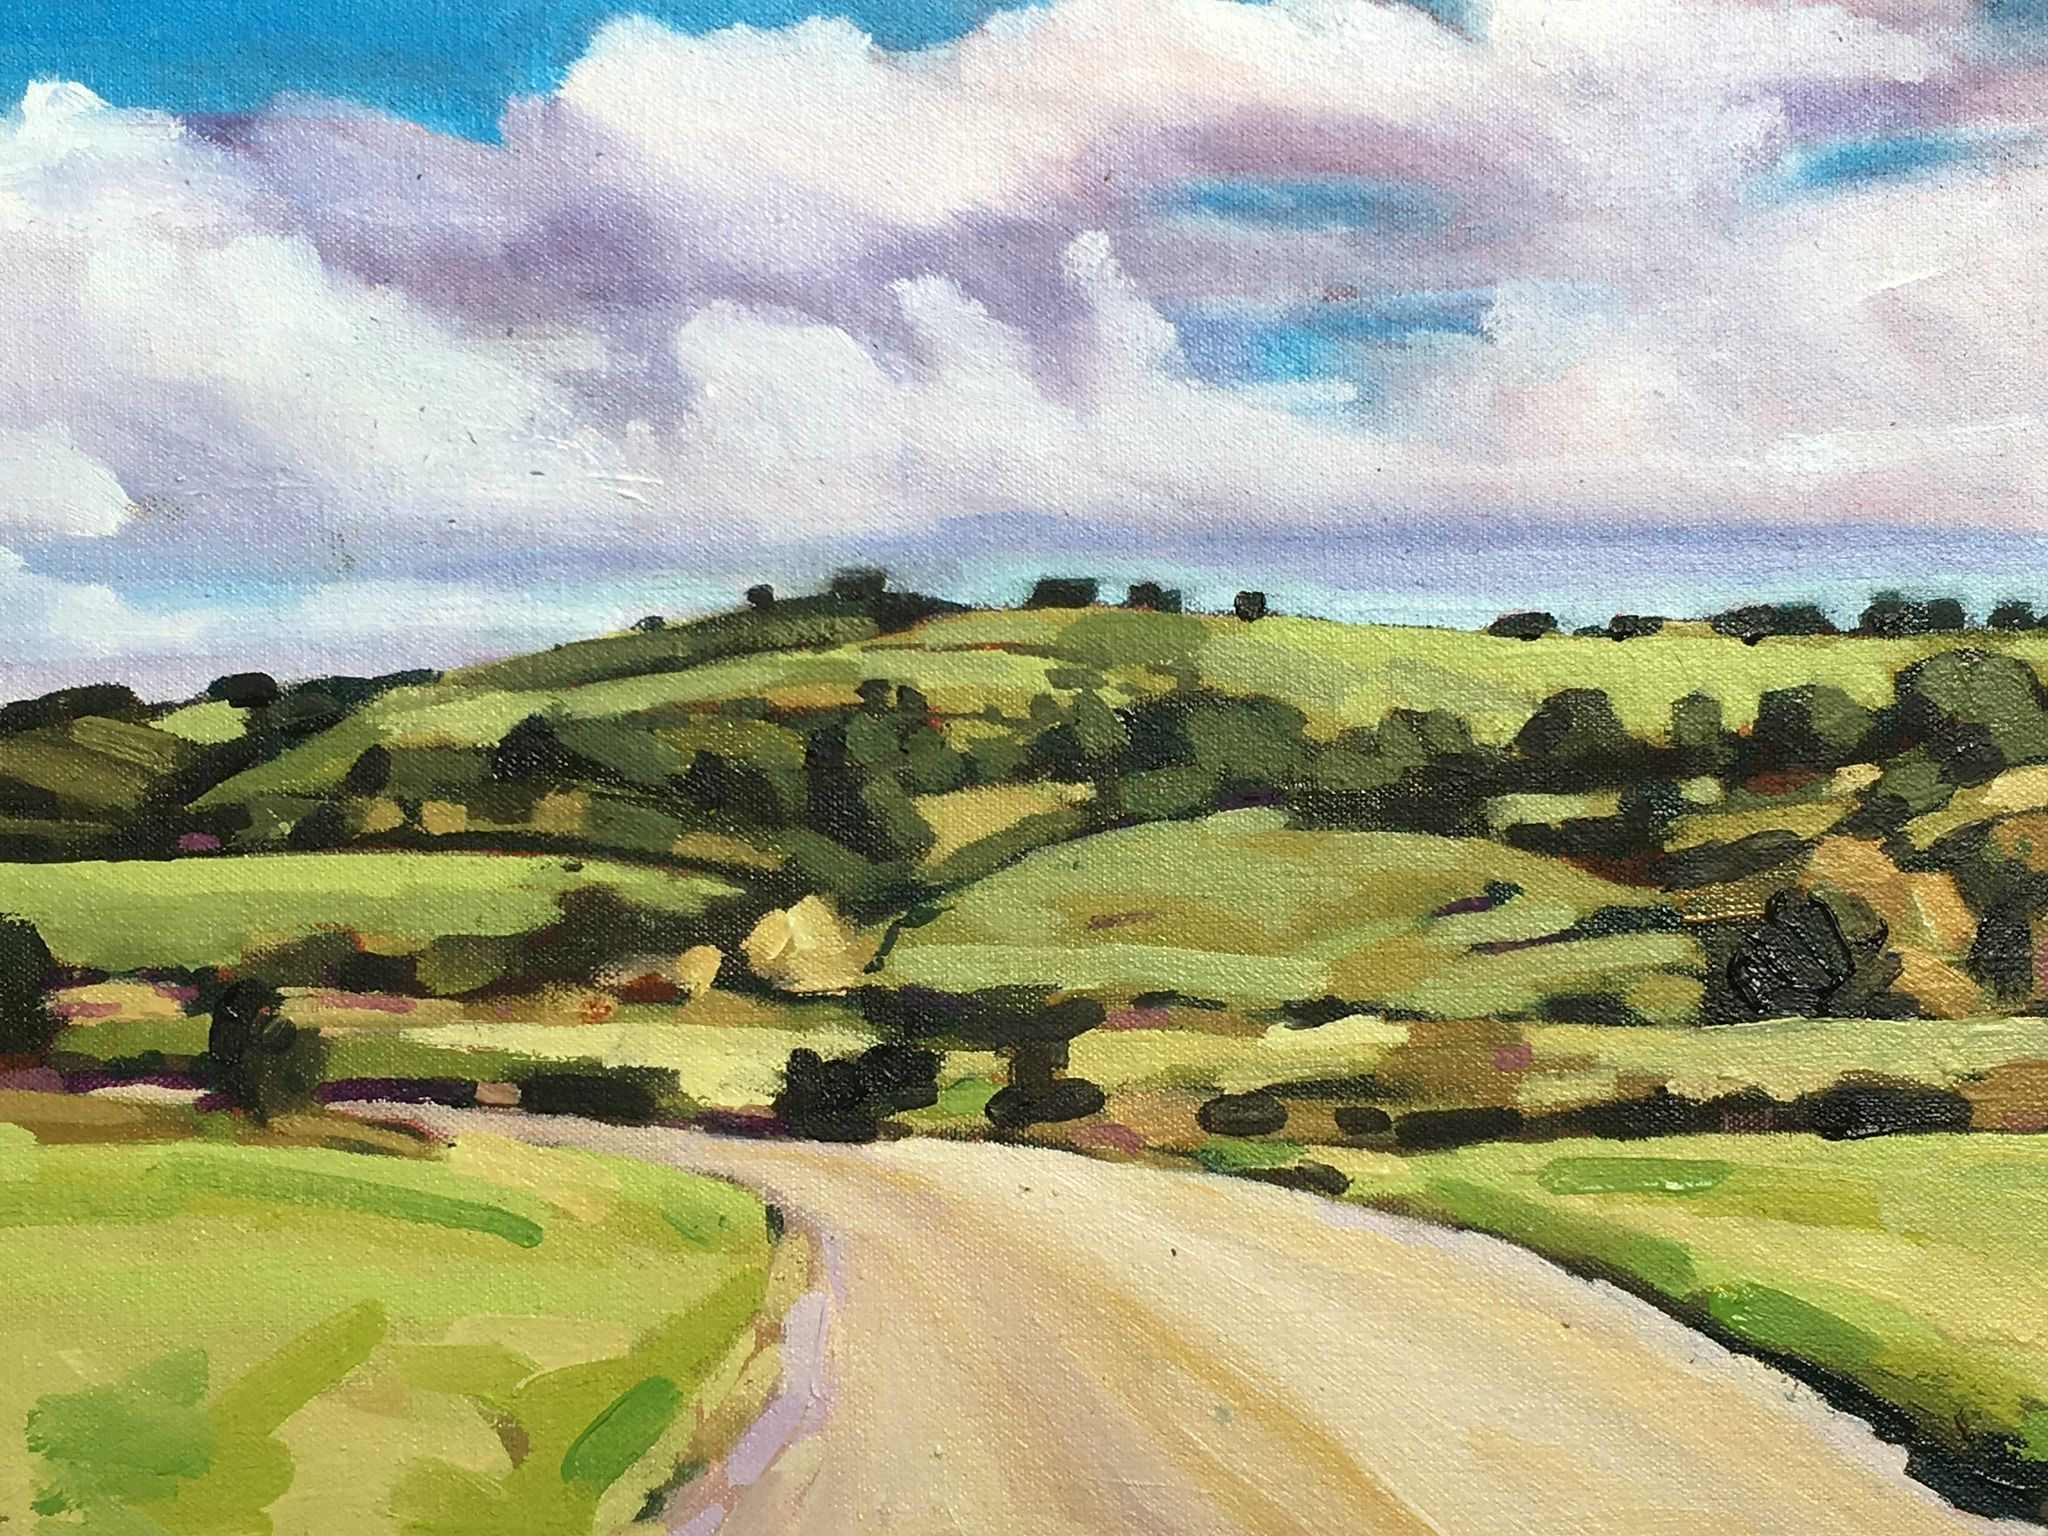 Jeremy Bournon - Jeremy is primarily a landscape painter working from a home-based studio in Repton, Derbyshire, and also in a larger space at Storer Farm, Wirksworth, where he runs art courses.